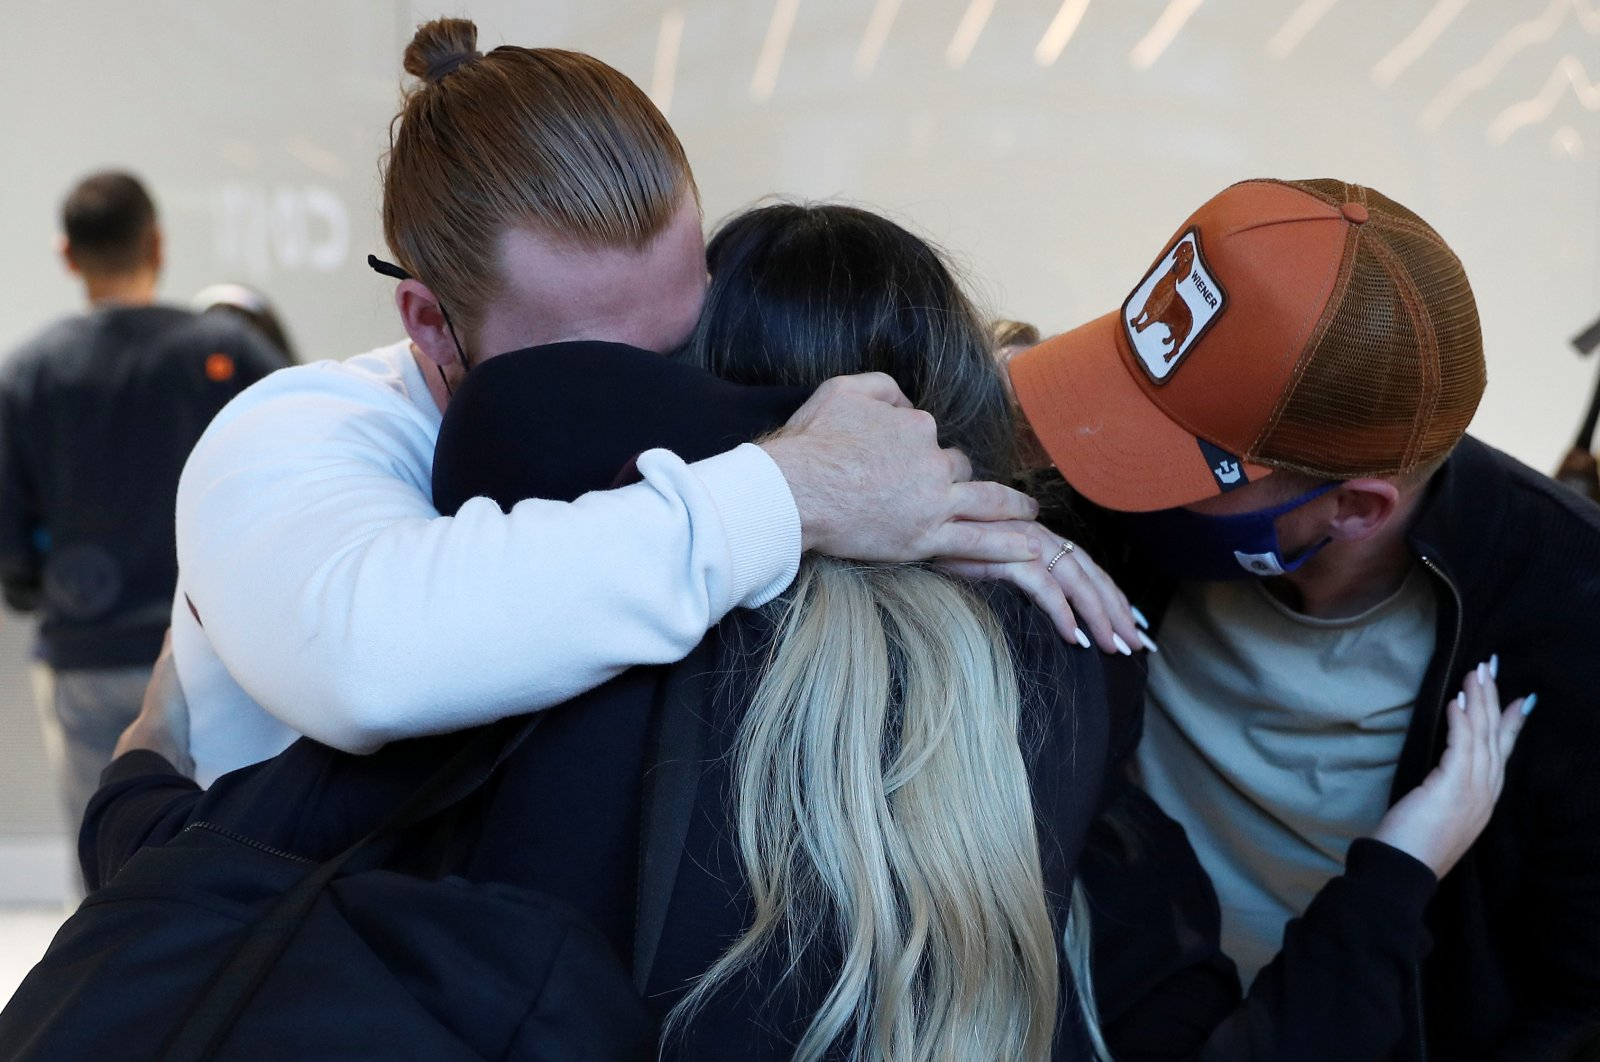 People meeting family members from the U.S. embrace at the international arrivals area of Terminal 5 in London's  Heathrow Airport, Britain, Aug. 2, 2021. (Reuters Photo)